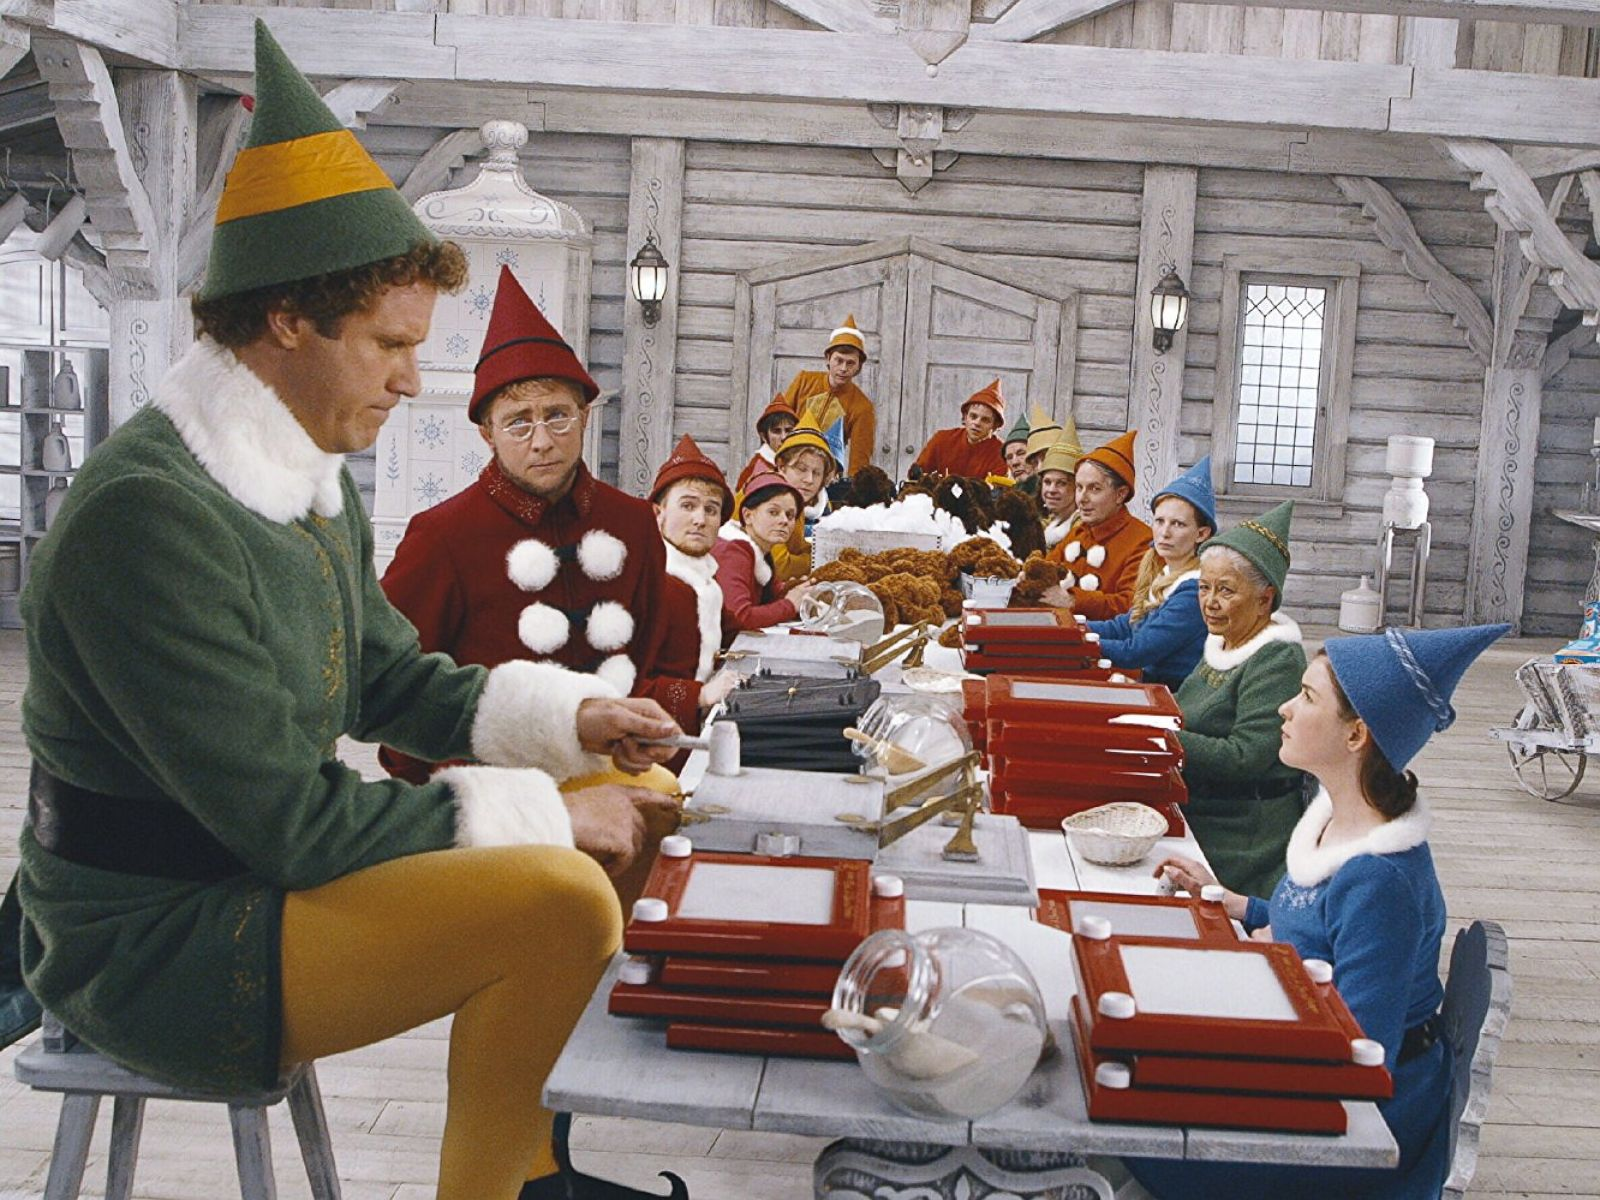 Buddy the elf sitting with all the other elves, very obviously bigger than the others.  They are working on toys for the holiday season.